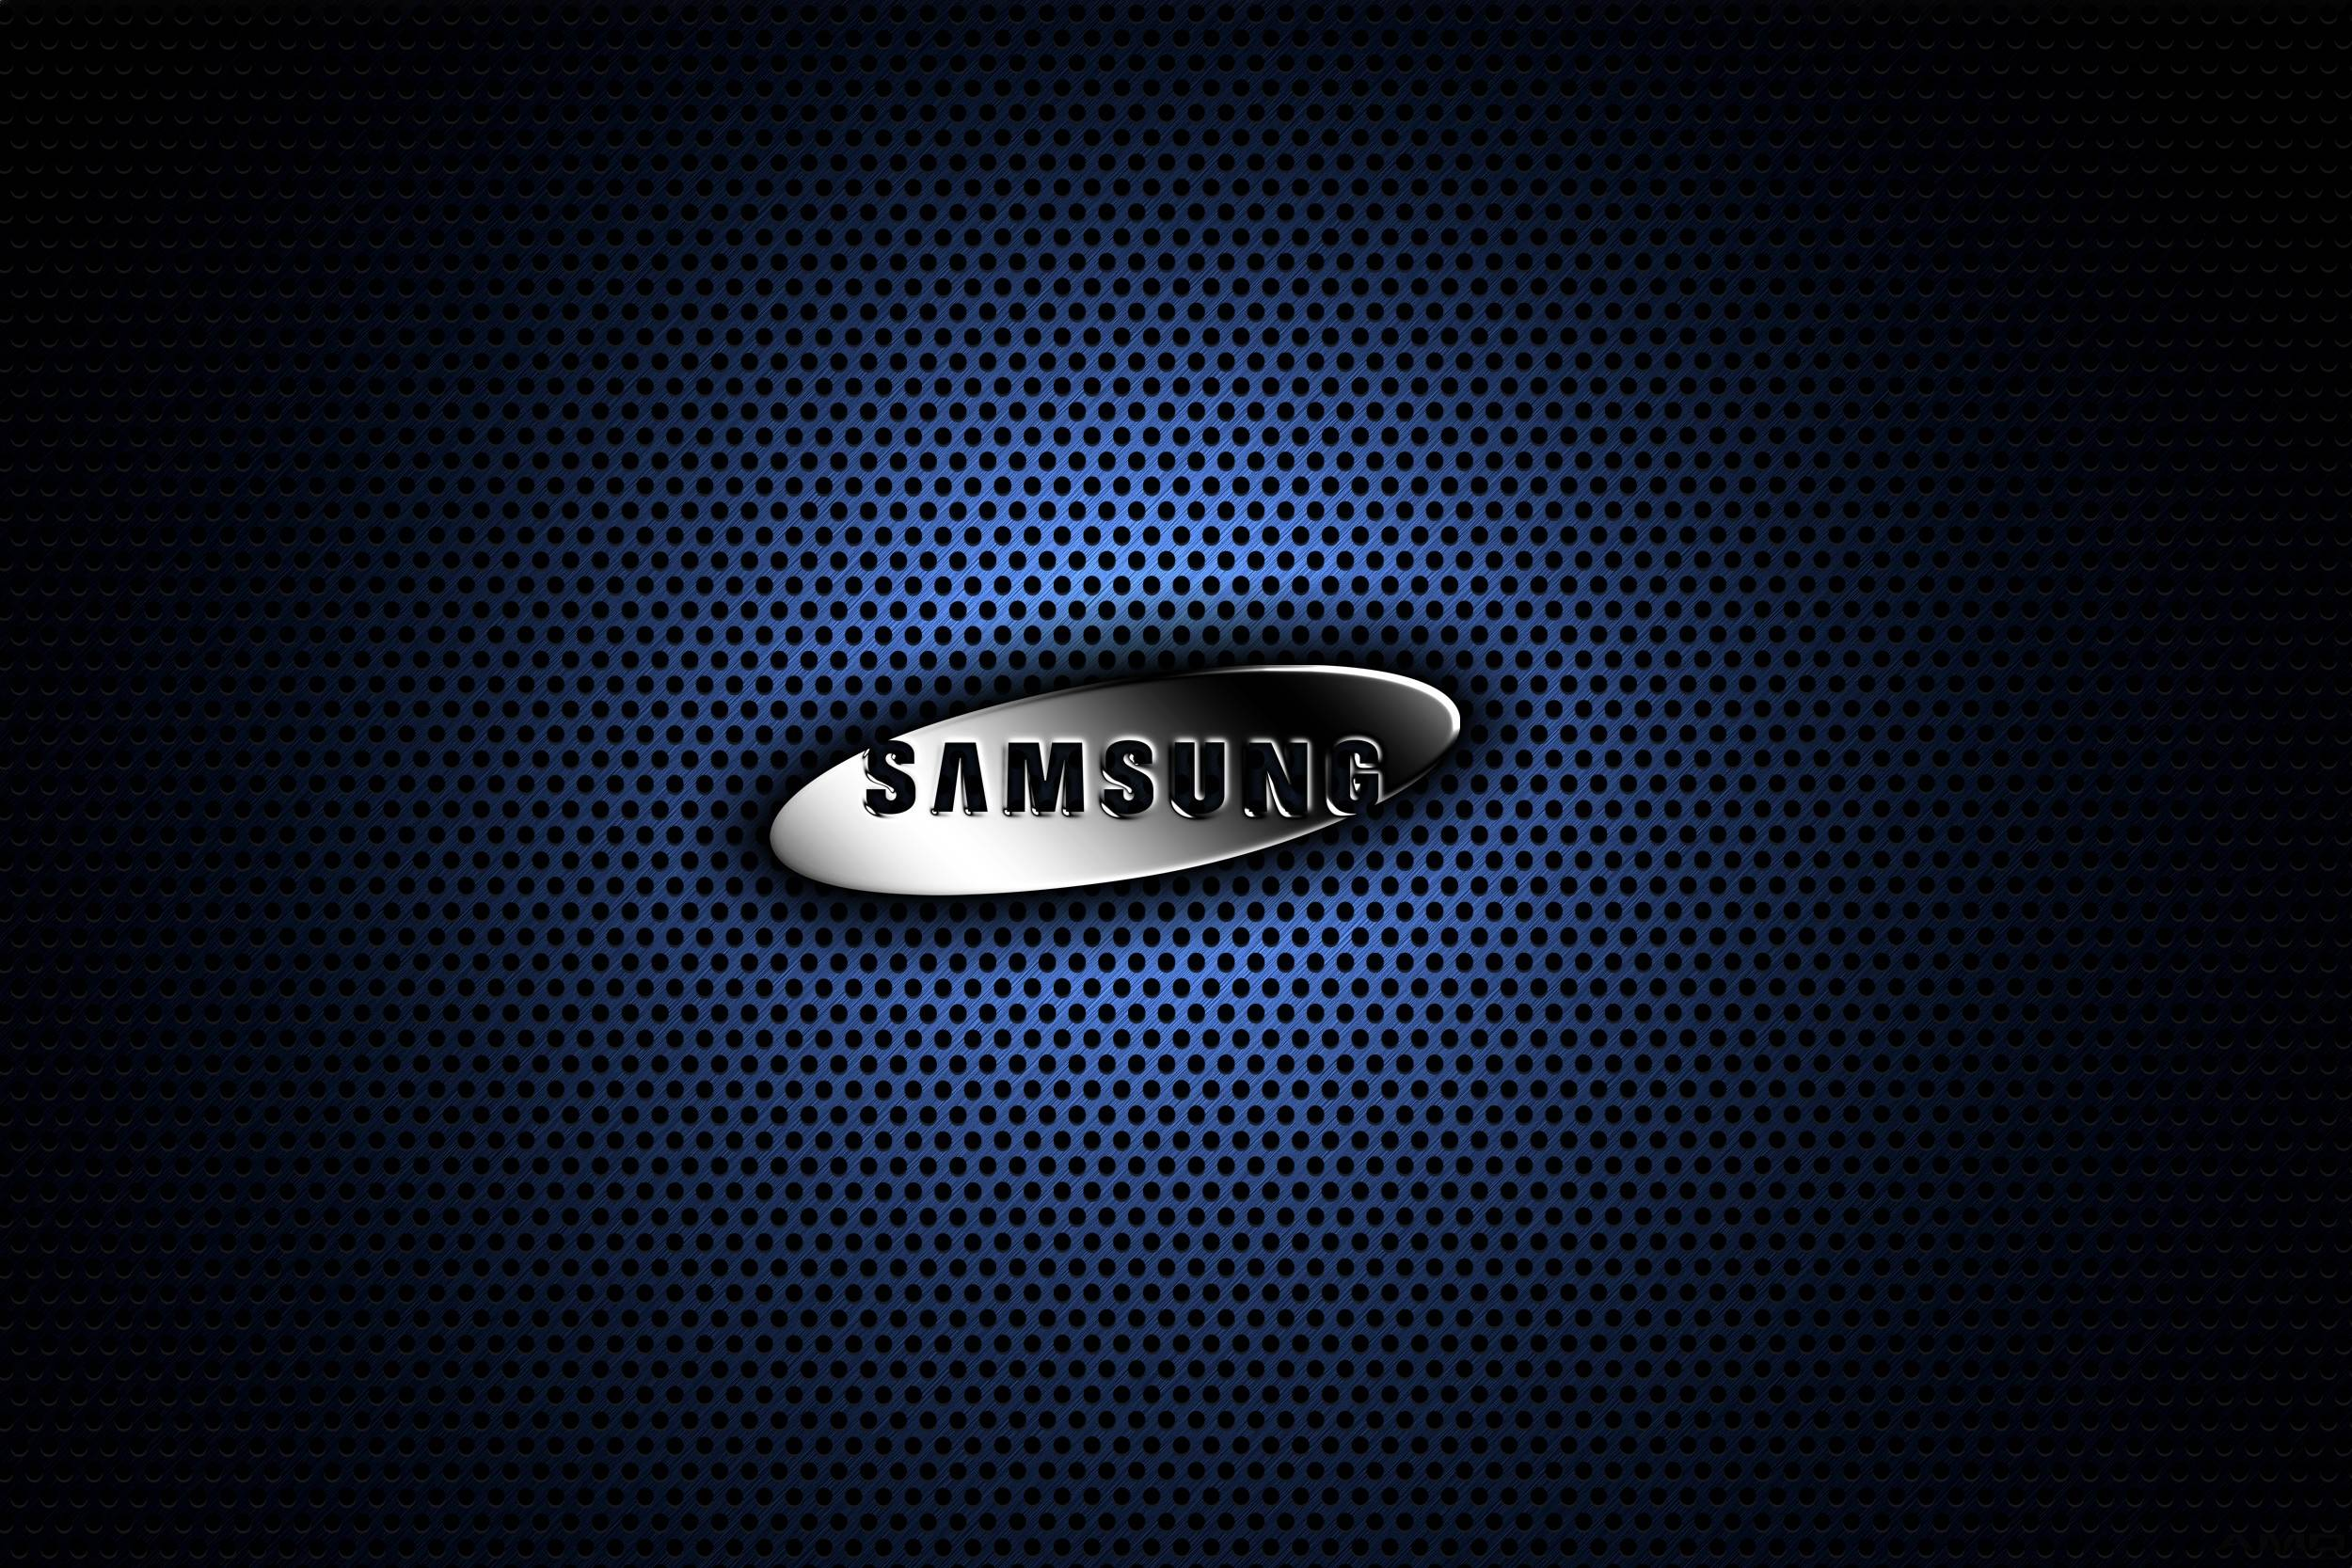 Samsung 1080p Wallpapers Top Free Samsung 1080p Backgrounds Wallpaperaccess